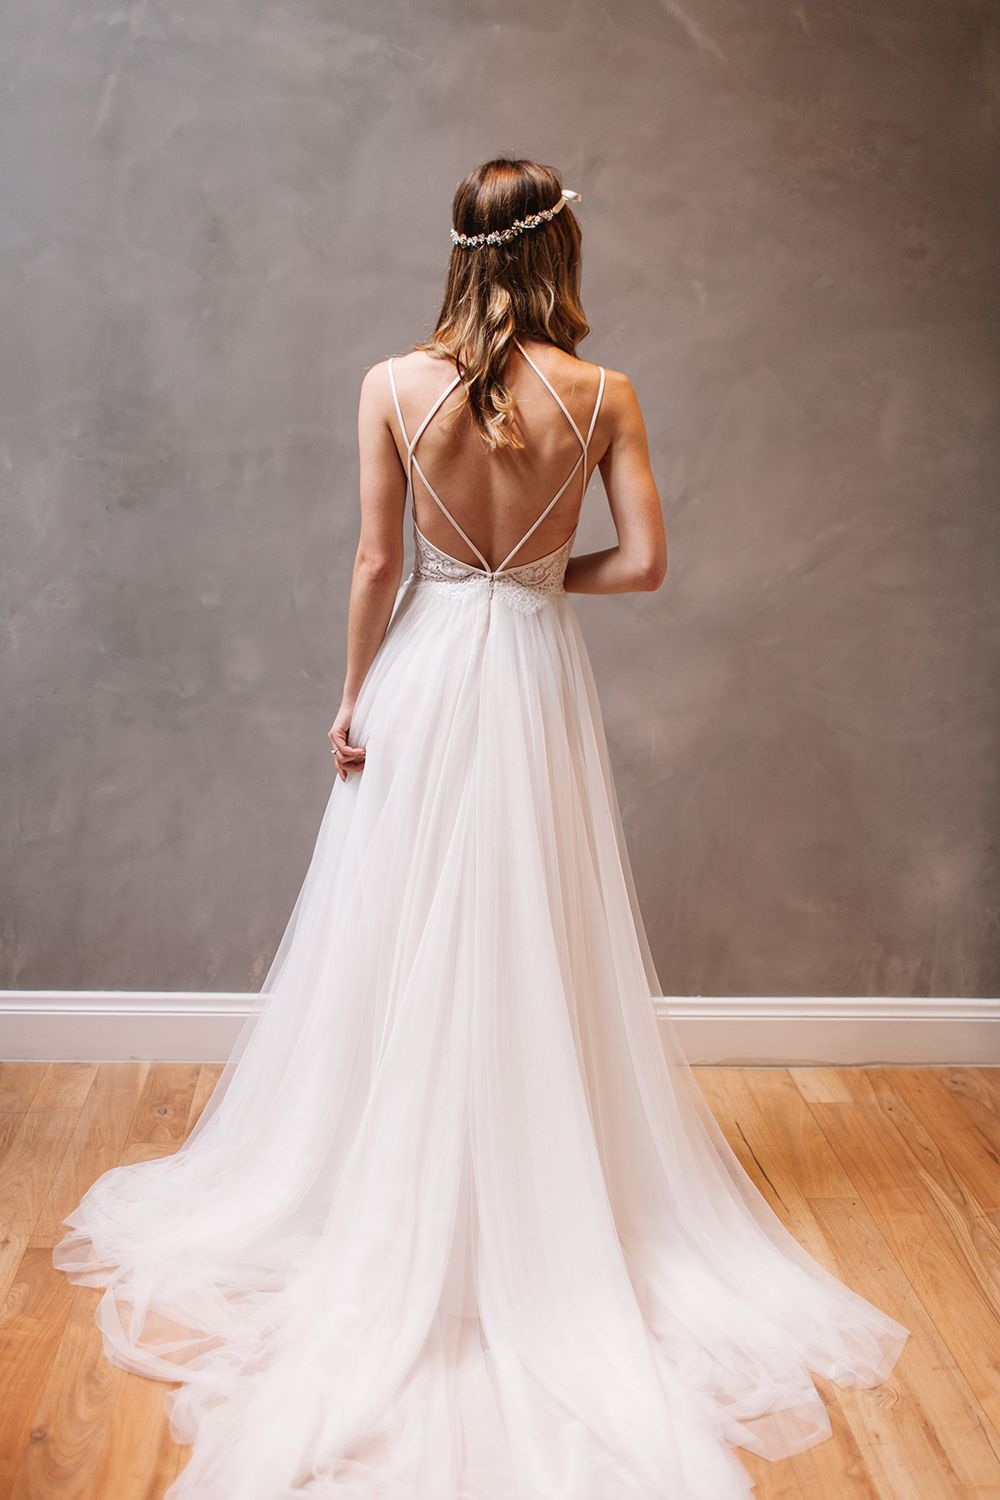 How To Make Women Want You More! | Backless wedding, Wedding dress ...